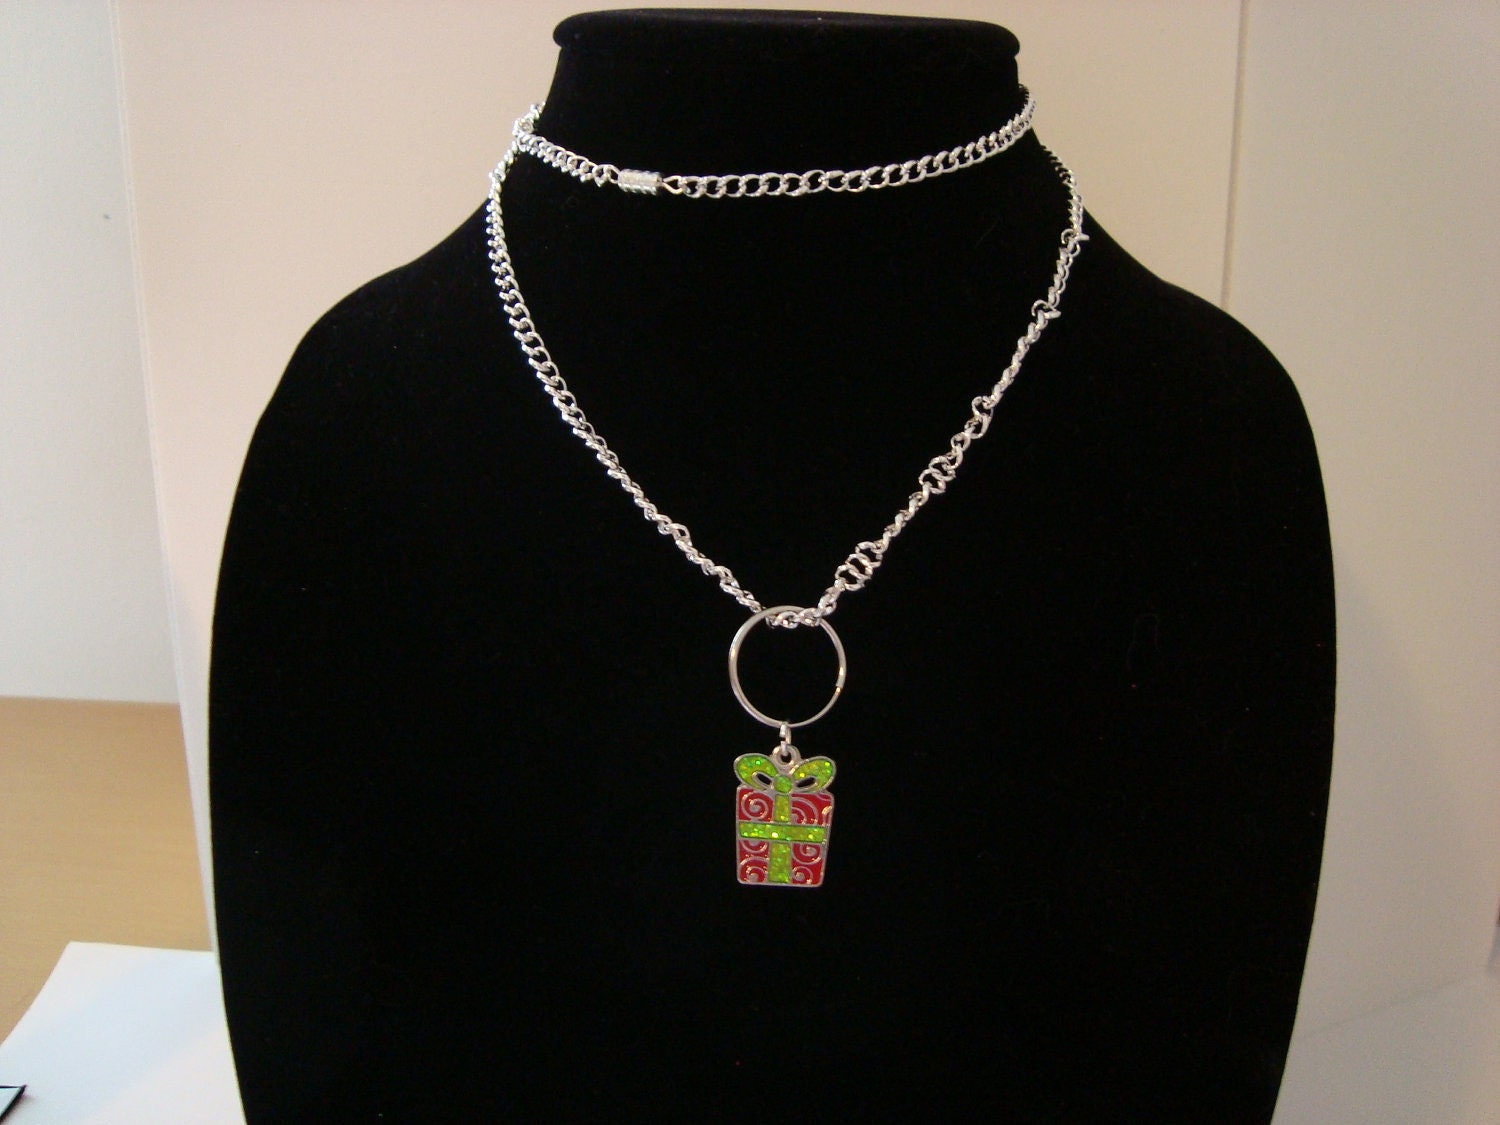 Holiday gift charm on silver chain necklace